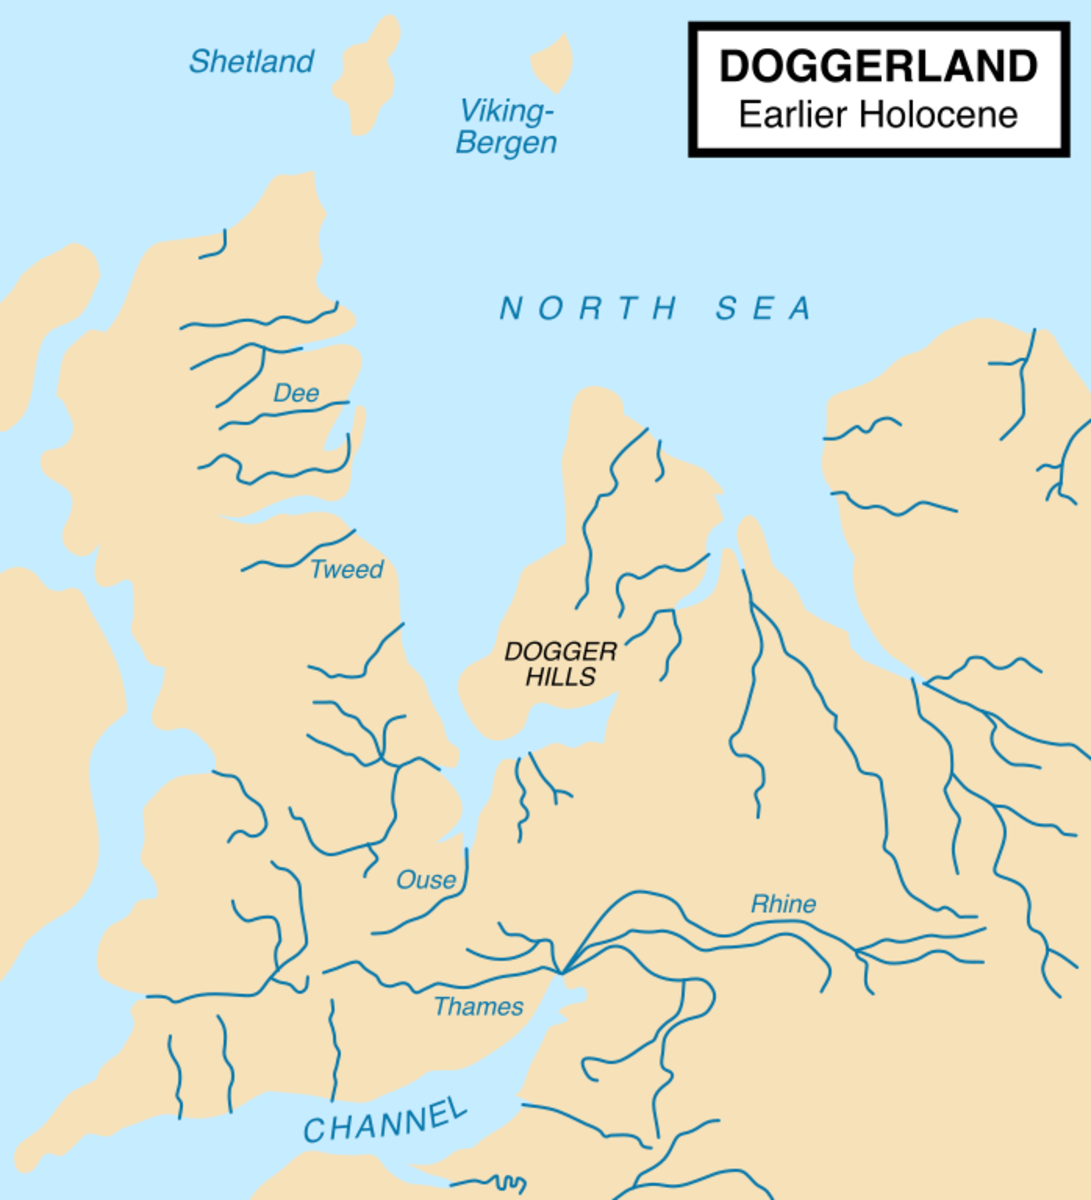 Doggerland approximately as it existed at the start of the Holocene Epoch